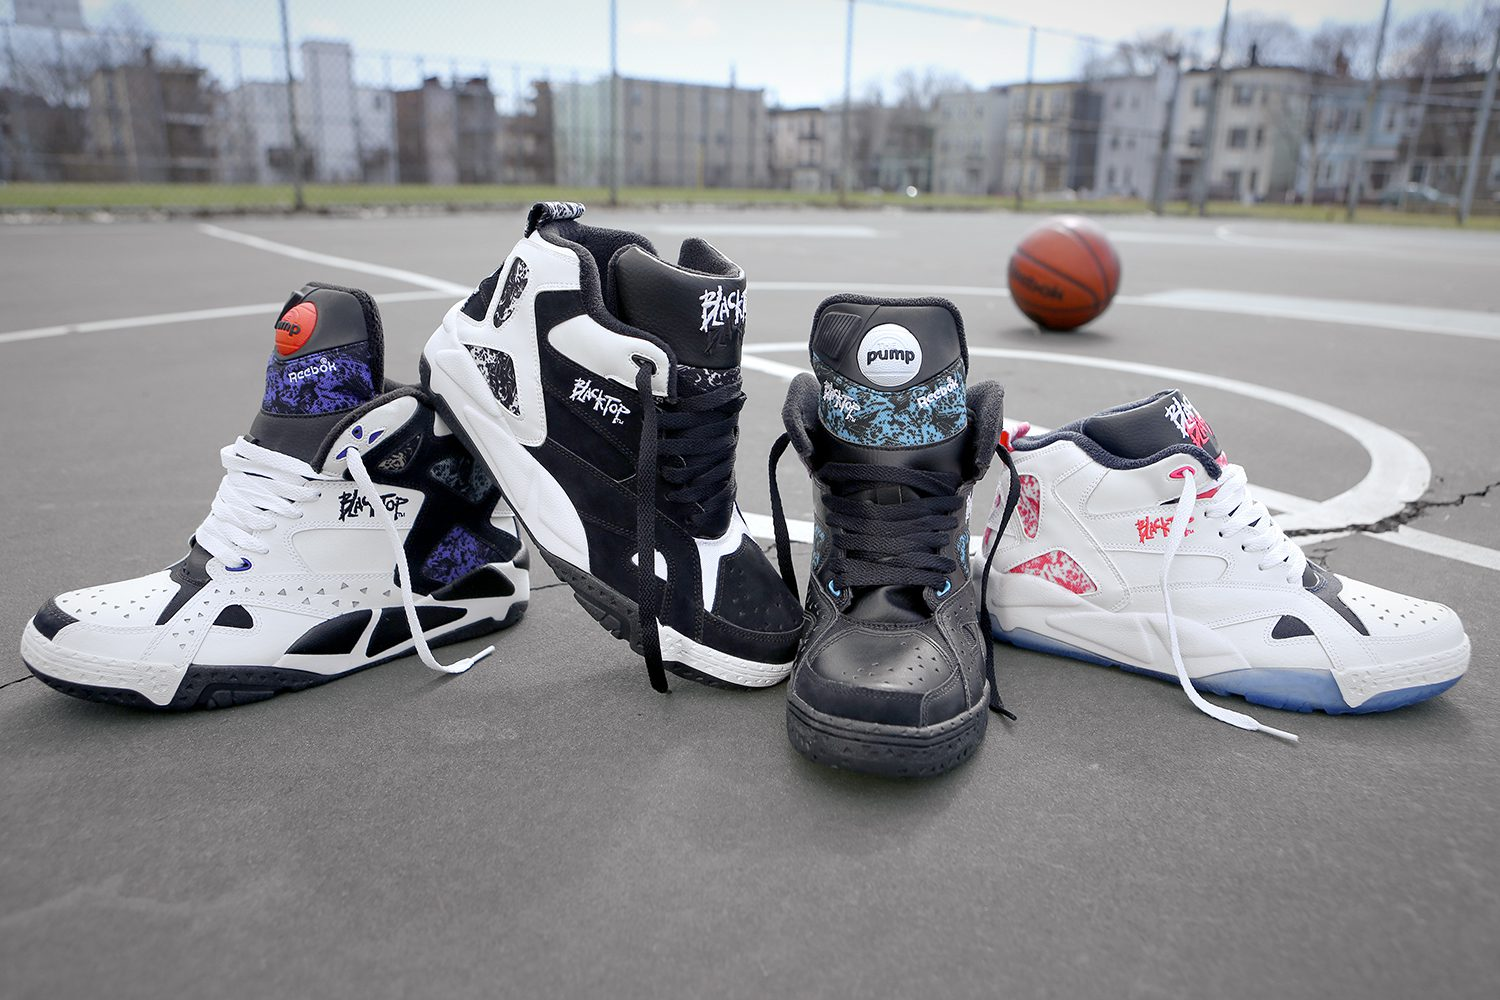 BMF Style  Reebok Classic Blacktop Collection - Hardwood and Hollywood 6d01554c4